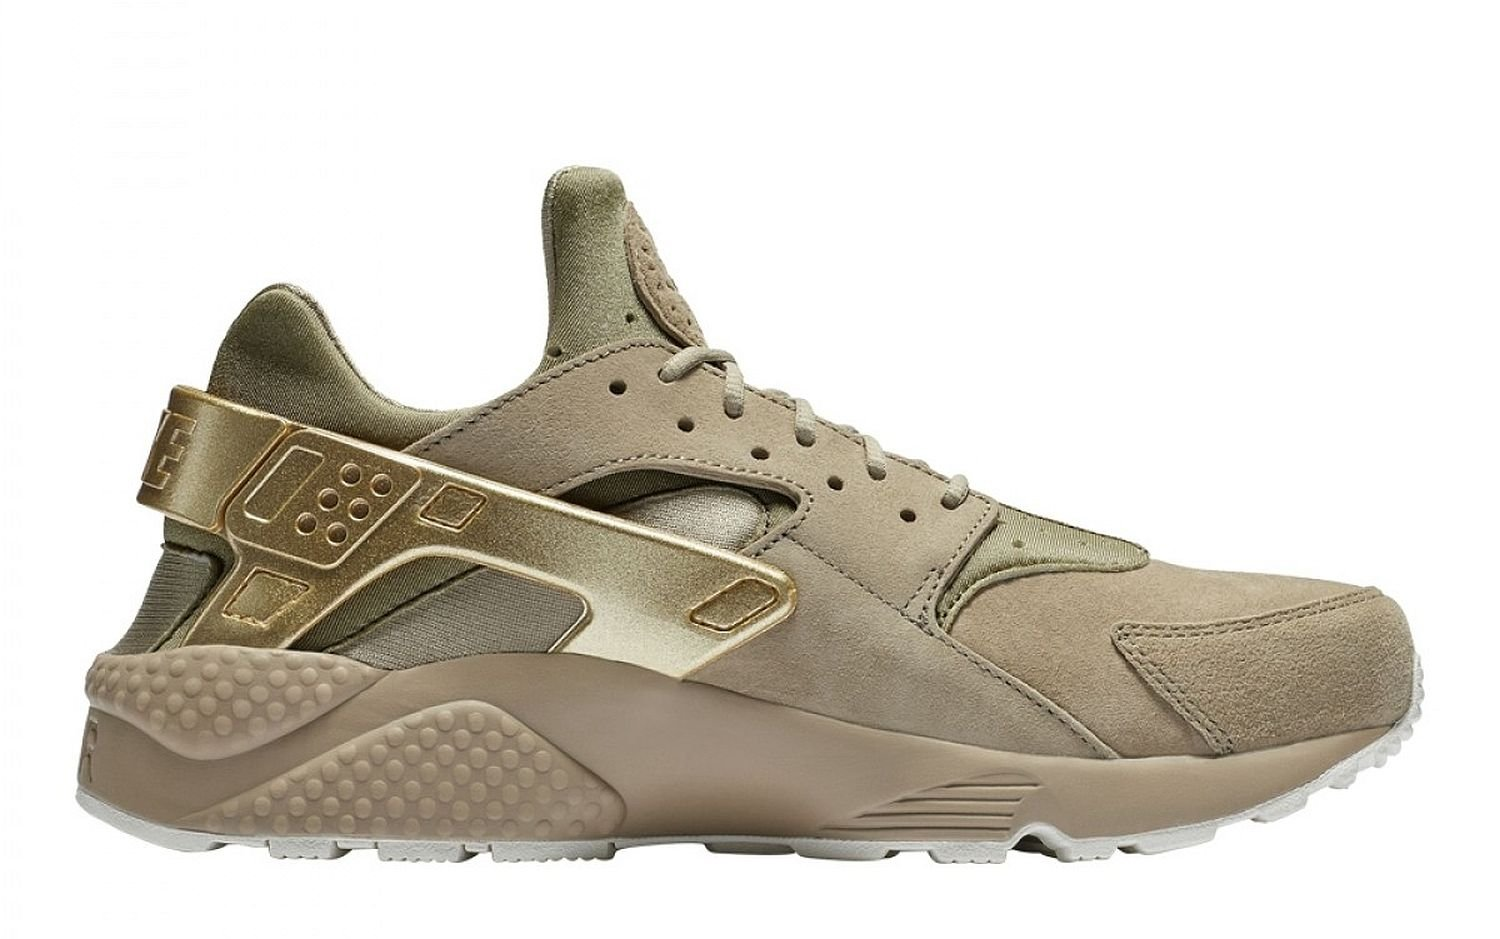 Nike Air Huarache Run Premium Khaki/Metallic Gold Coin-Sail (11.5 D(M) US)